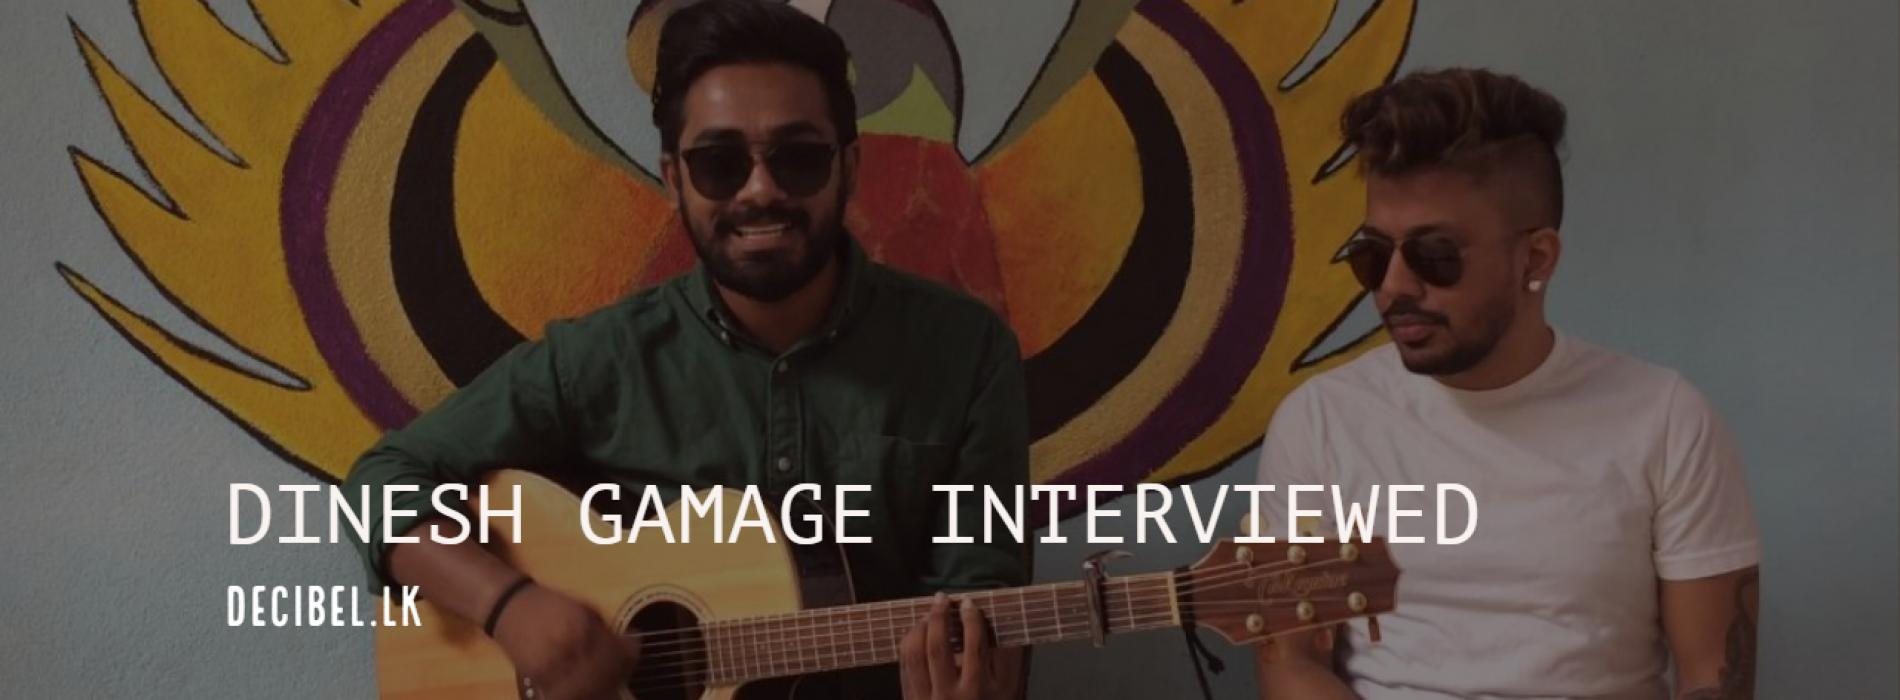 Dinesh Gamage Gets Interviewed